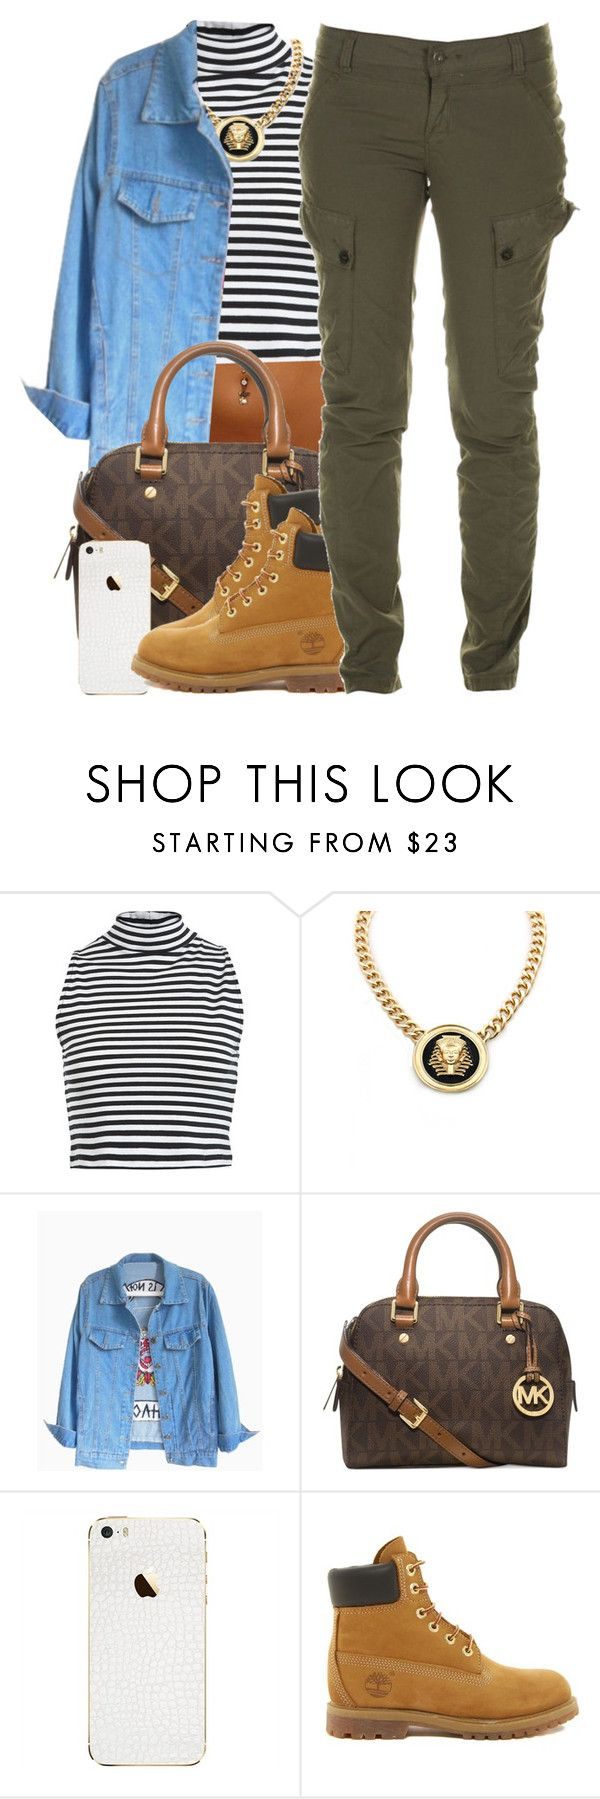 """""""January 4, 2k15"""" by xo-beauty ❤ liked on Polyvore featuring Miss Selfridge, Roial, Michael Kors, Timberland and Firetrap"""